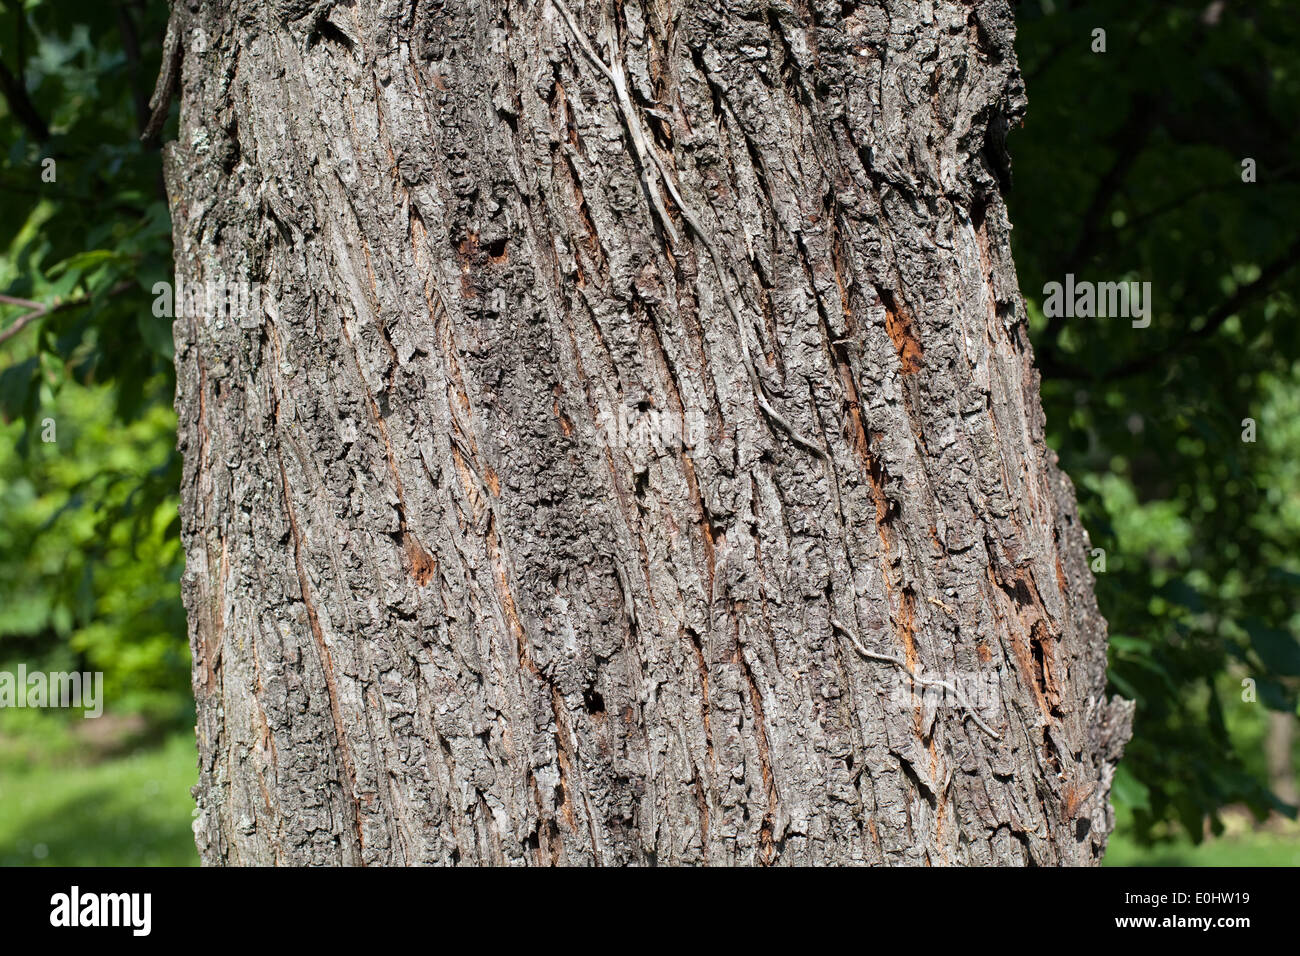 Baumrinde - Tree bark - Stock Image